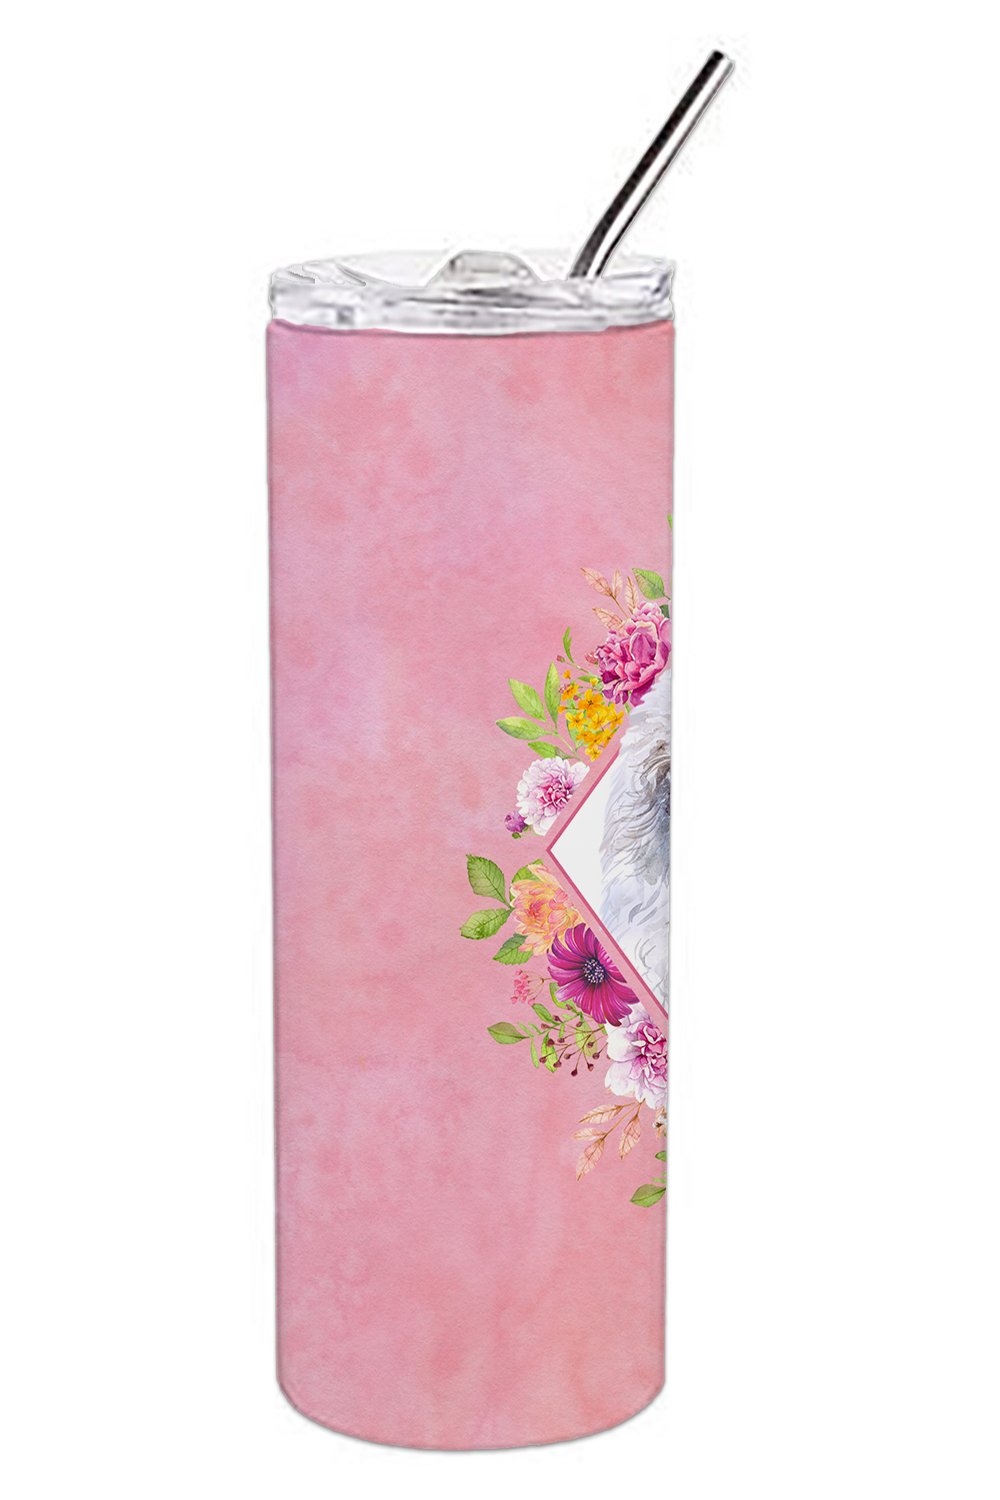 White Mini Poodle Pink Flowers Double Walled Stainless Steel 20 oz Skinny Tumbler CK4172TBL20 by Caroline's Treasures